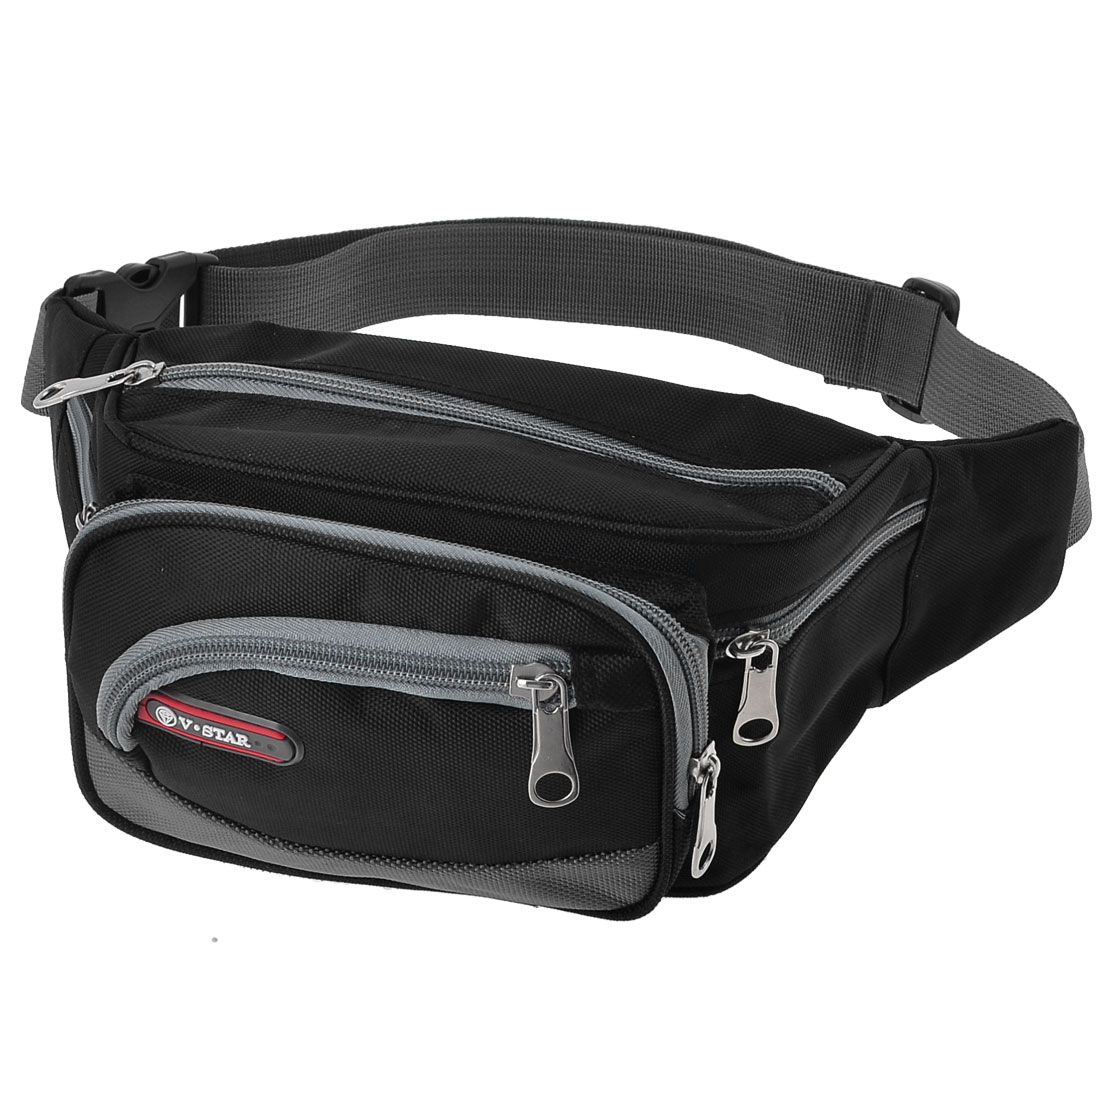 Hiking Side Zip Pockets Adjustable Belt Waist Pack Bag Black Gray for Men